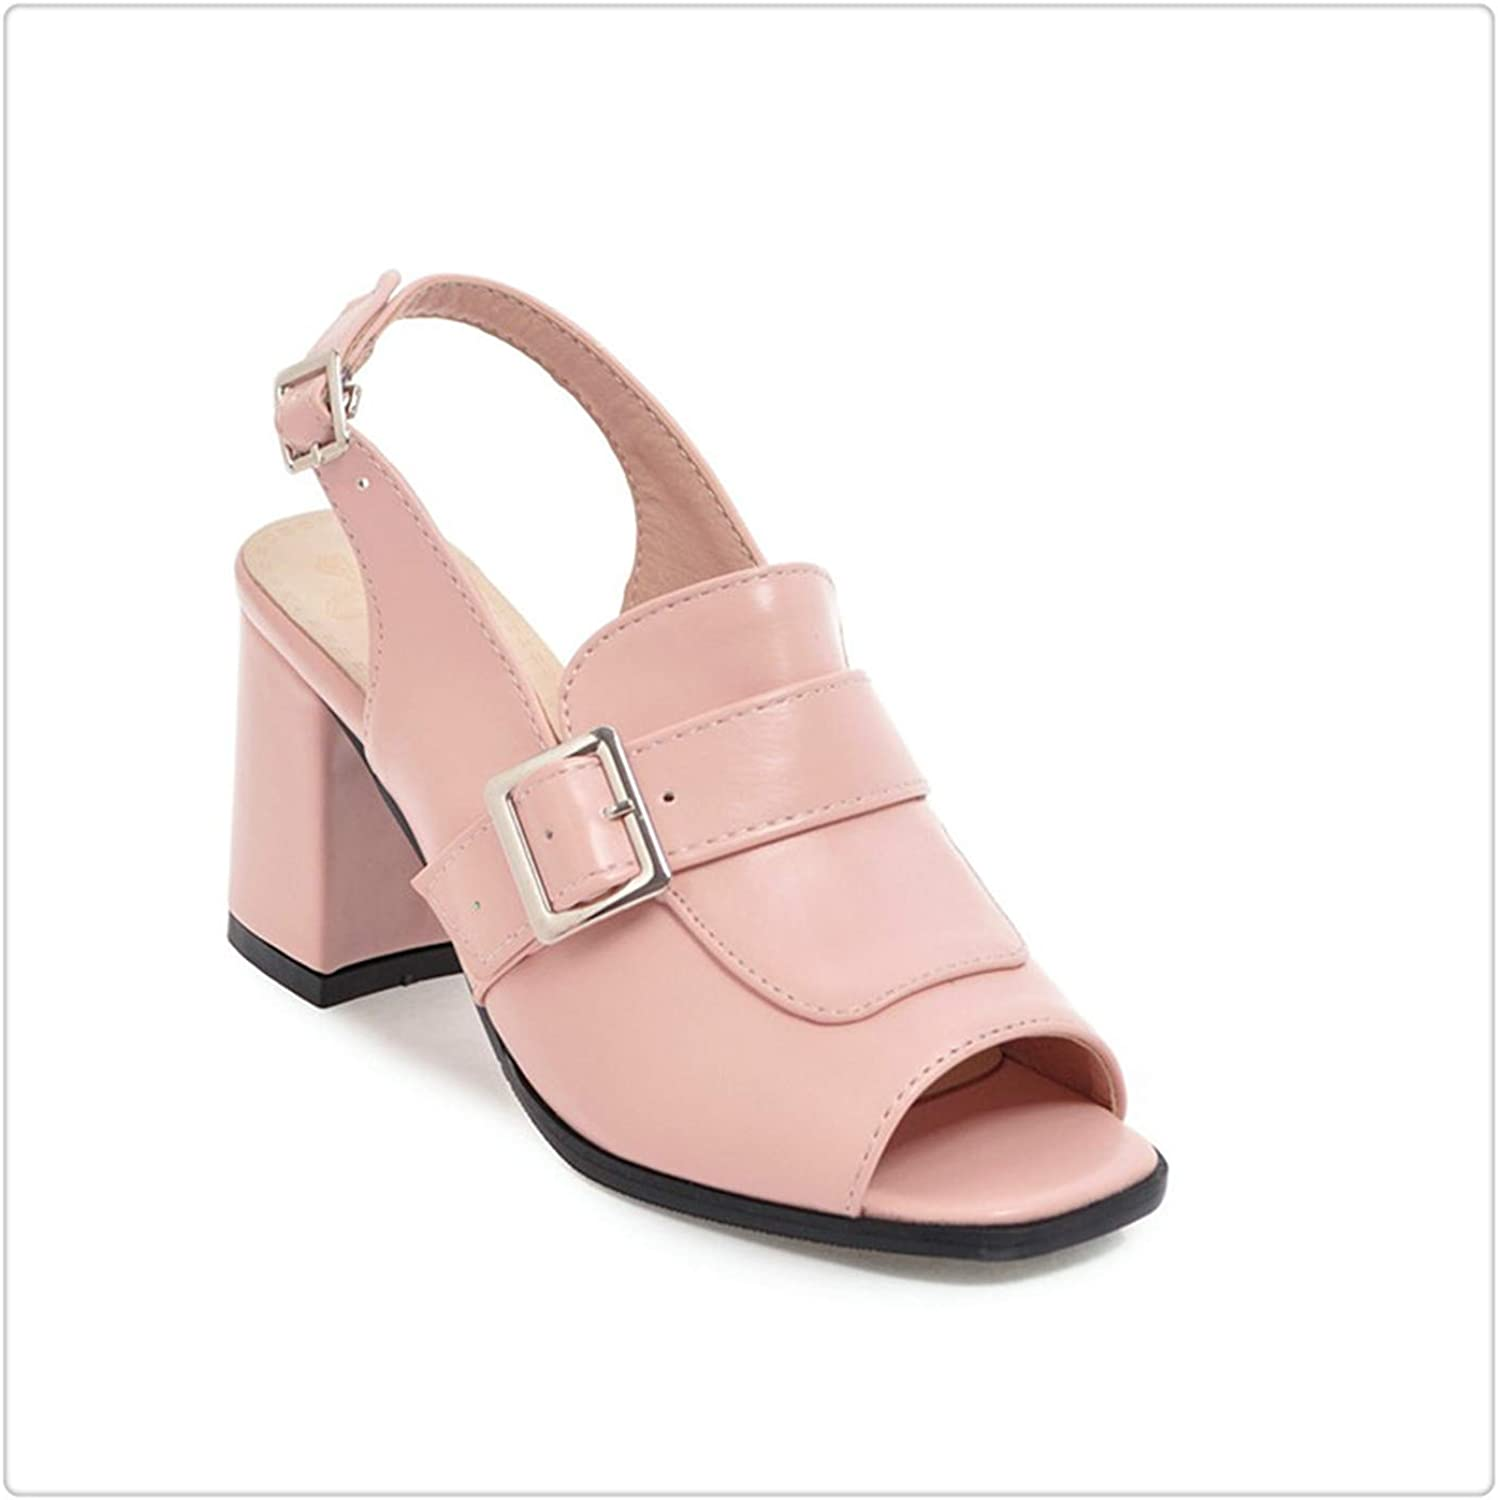 ZXCVB& Woman Fashion squareHigh Heels Sandals Women Summer Open Toe shoes 2019 Womens Female Buckle Slingback Casual Party Sandal Pink 5